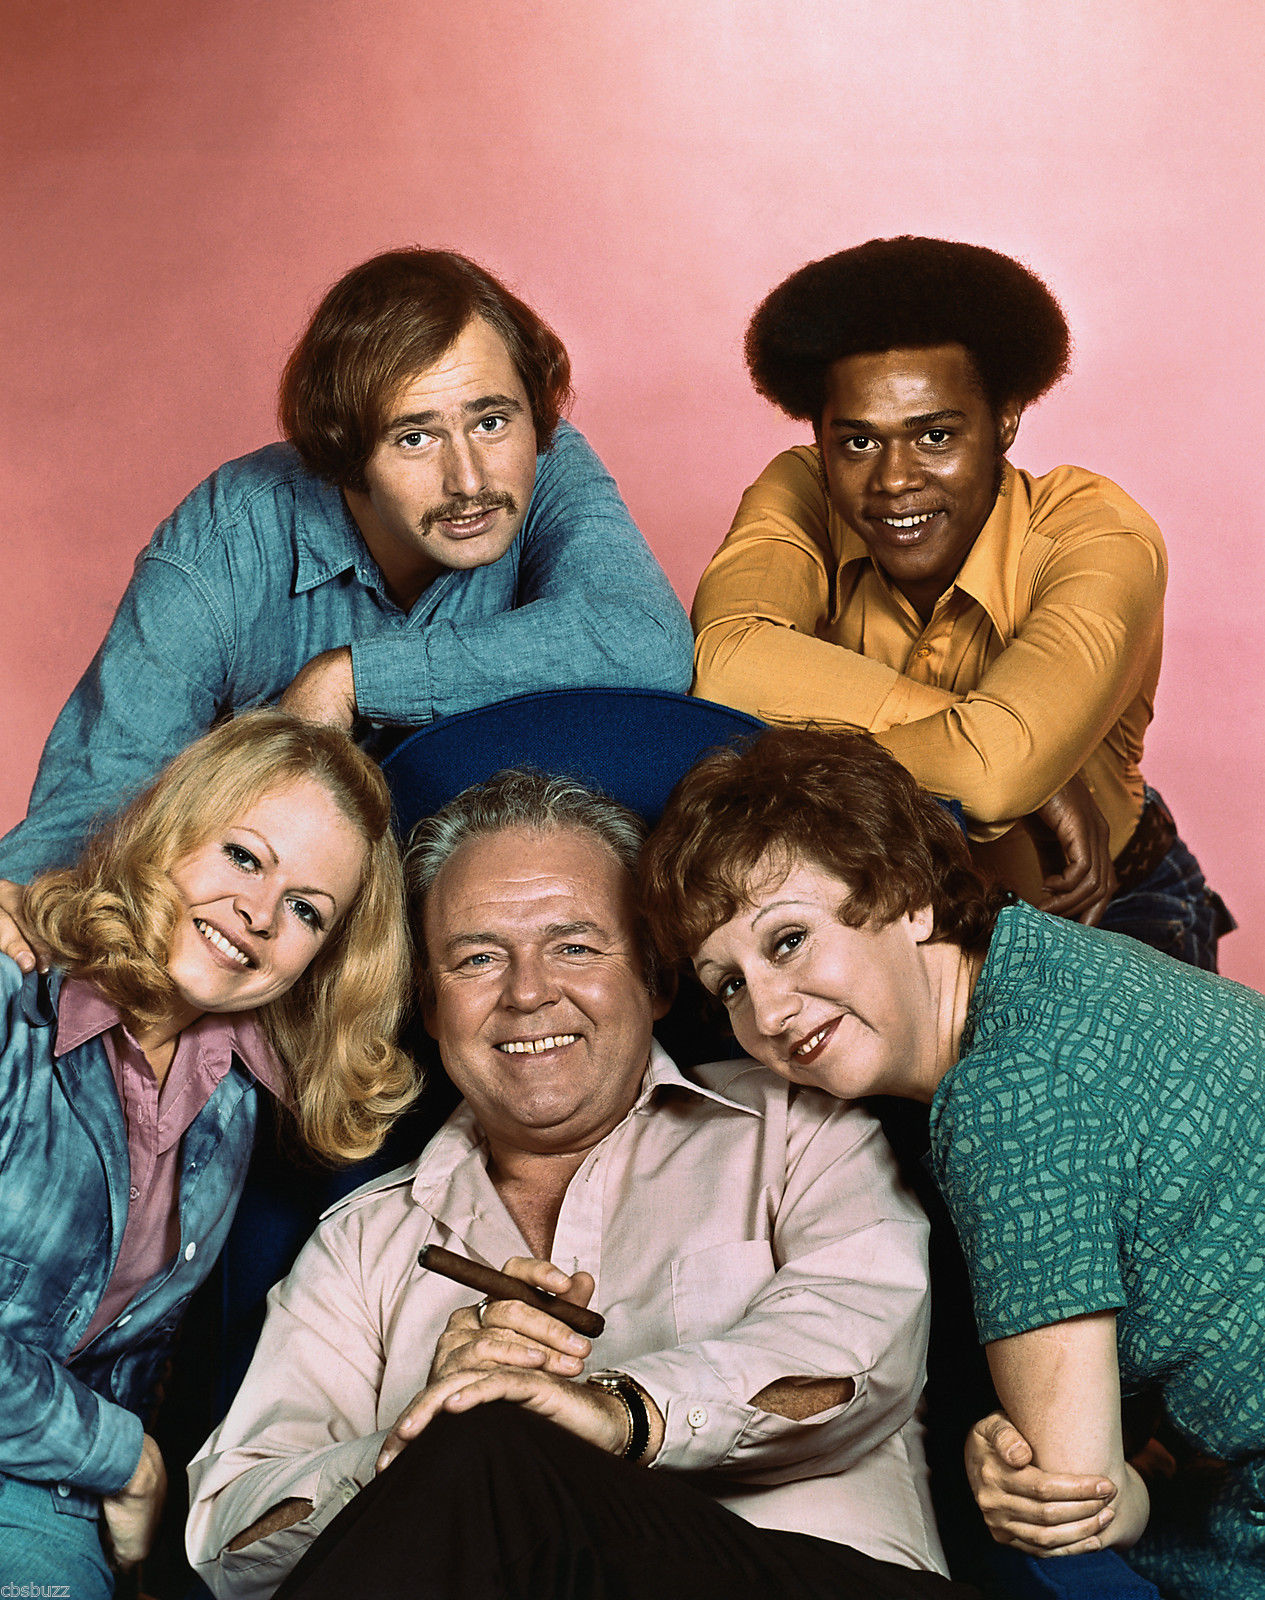 s-l1600ALL_IN_THE_FAMILY_-_TV_SHOW_PHOTO_28